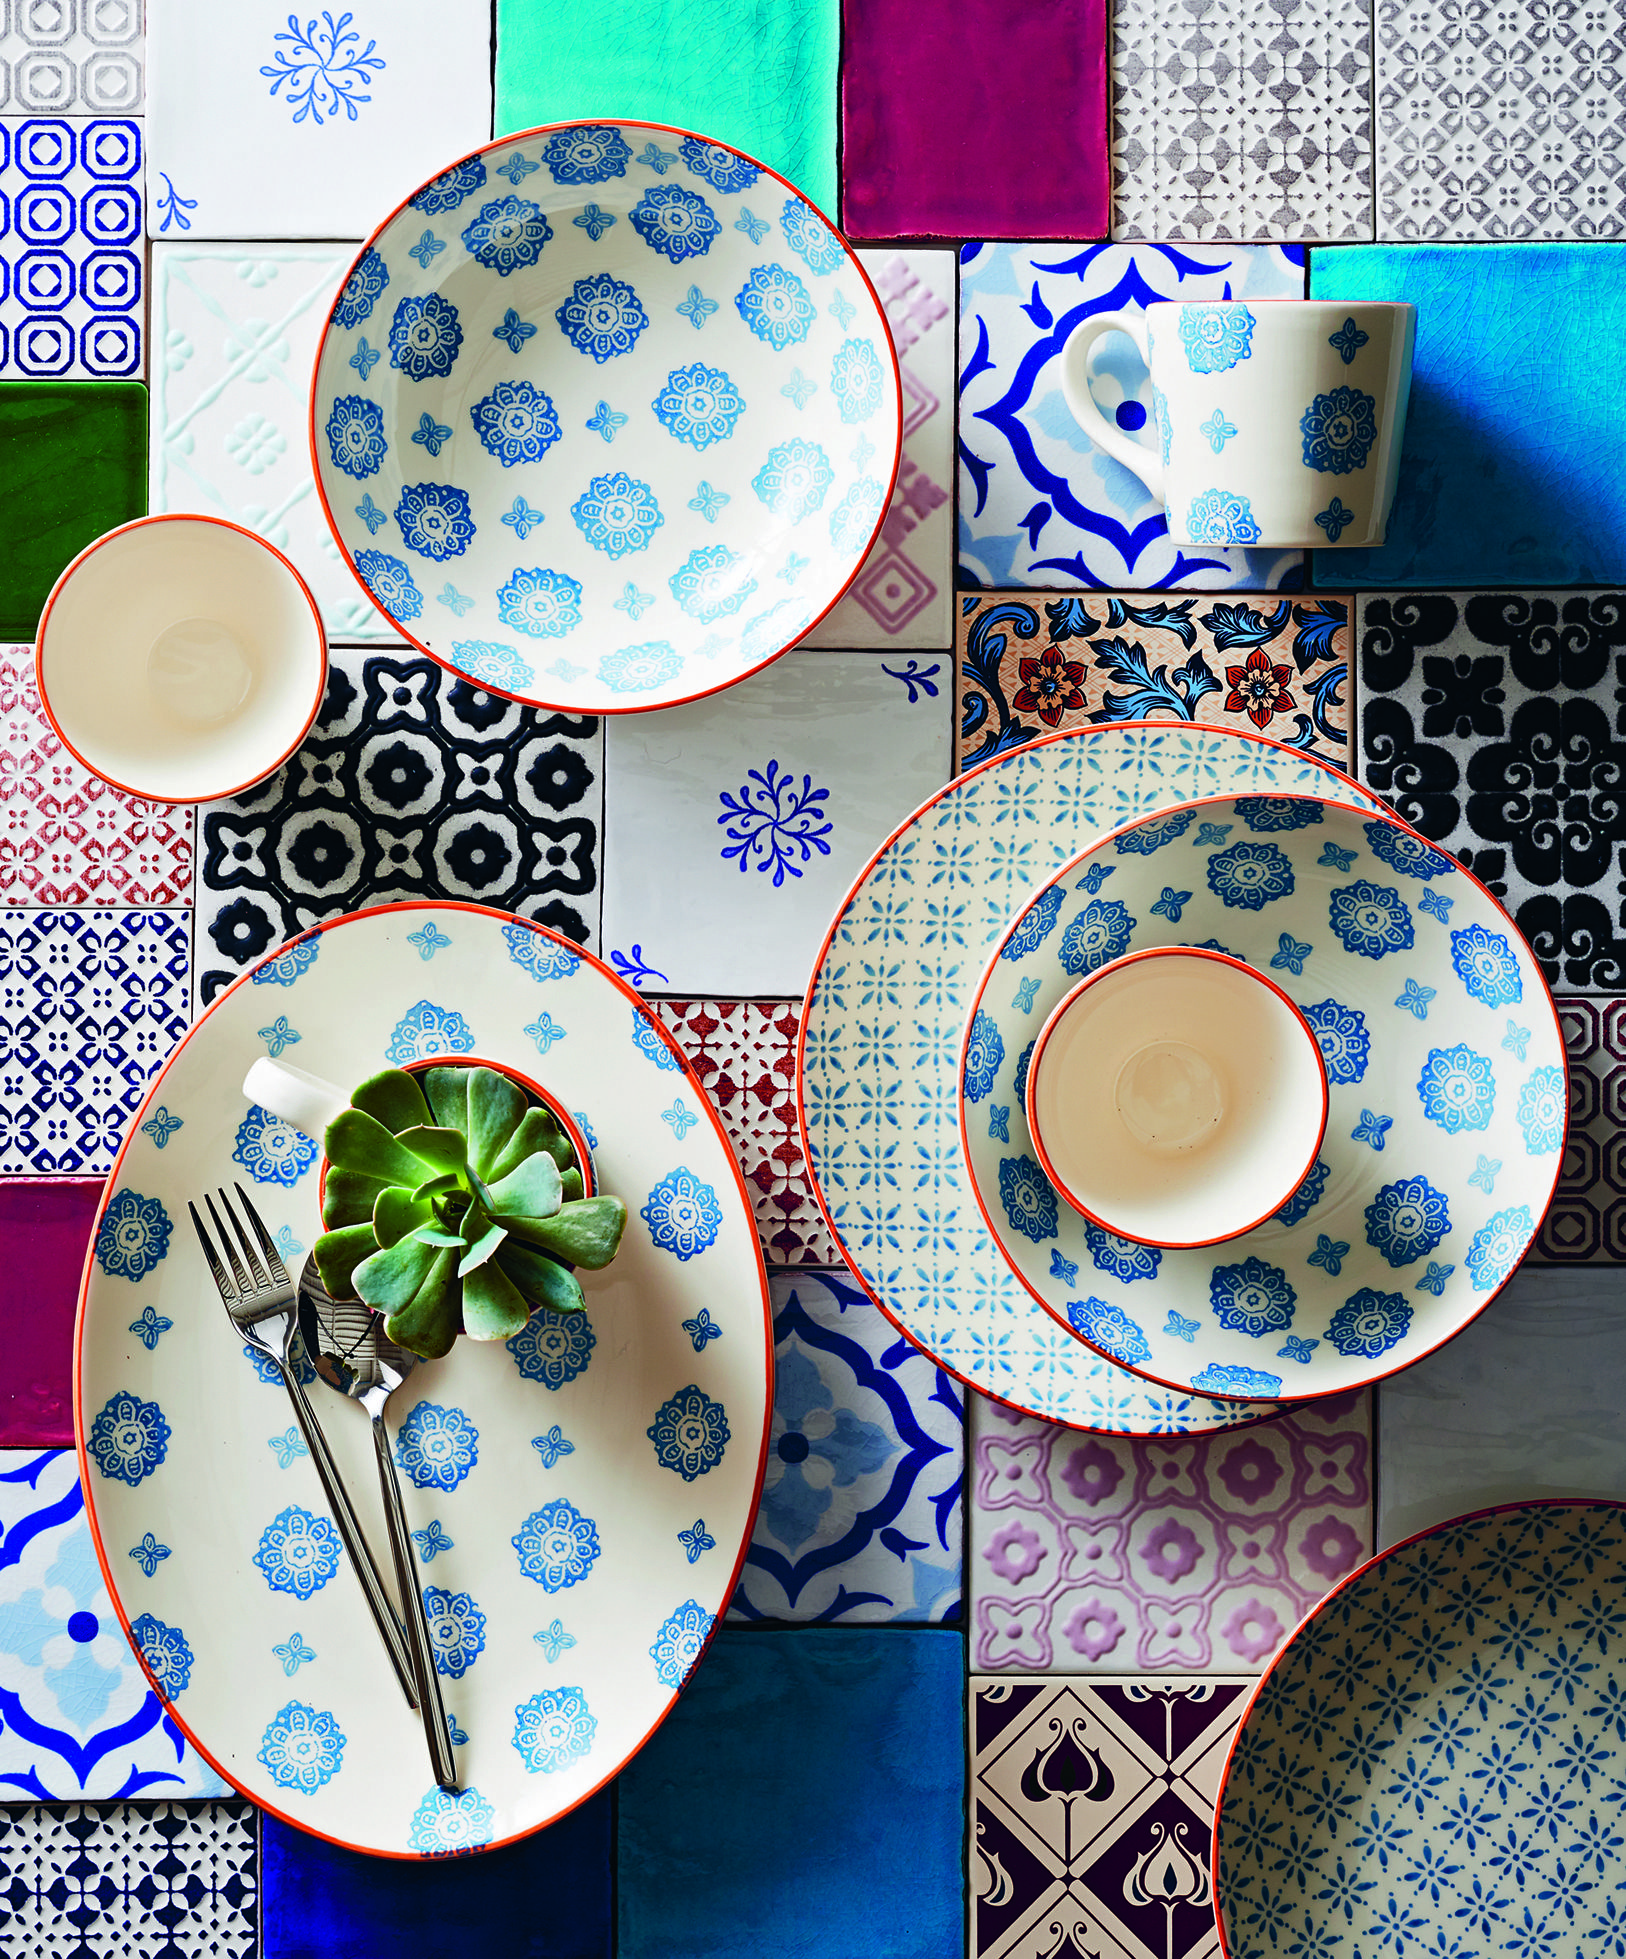 Taking Inspiration From Richly Decorated Middle Eastern